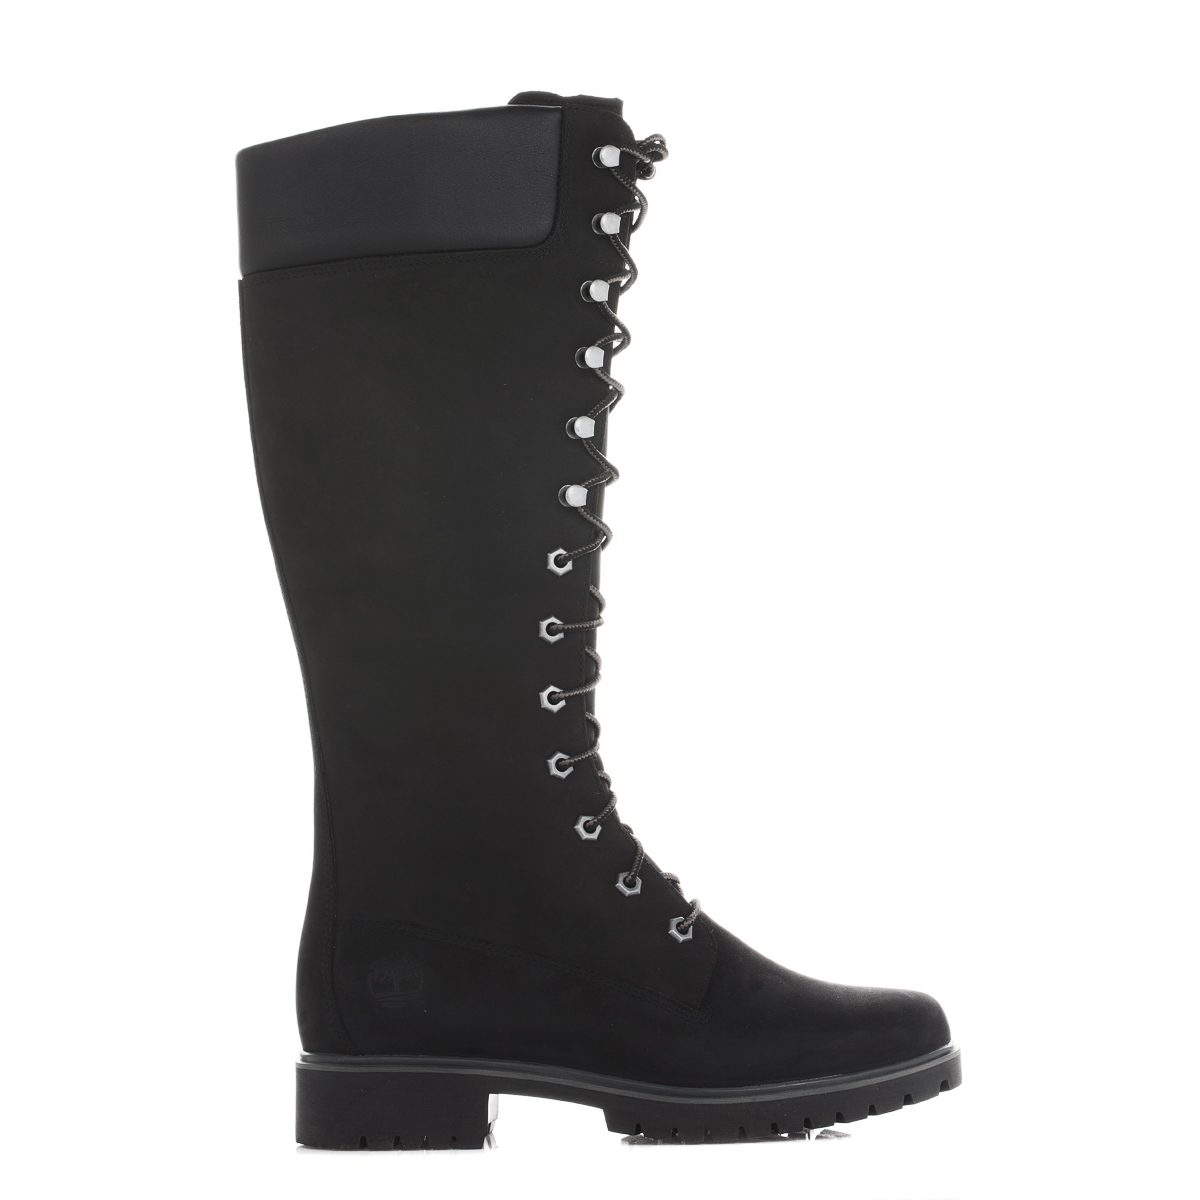 Timberland Womens Ladies Lace Up Black Premium 14 Inch Tall Boots Shoes  C8167R ce96e198ed